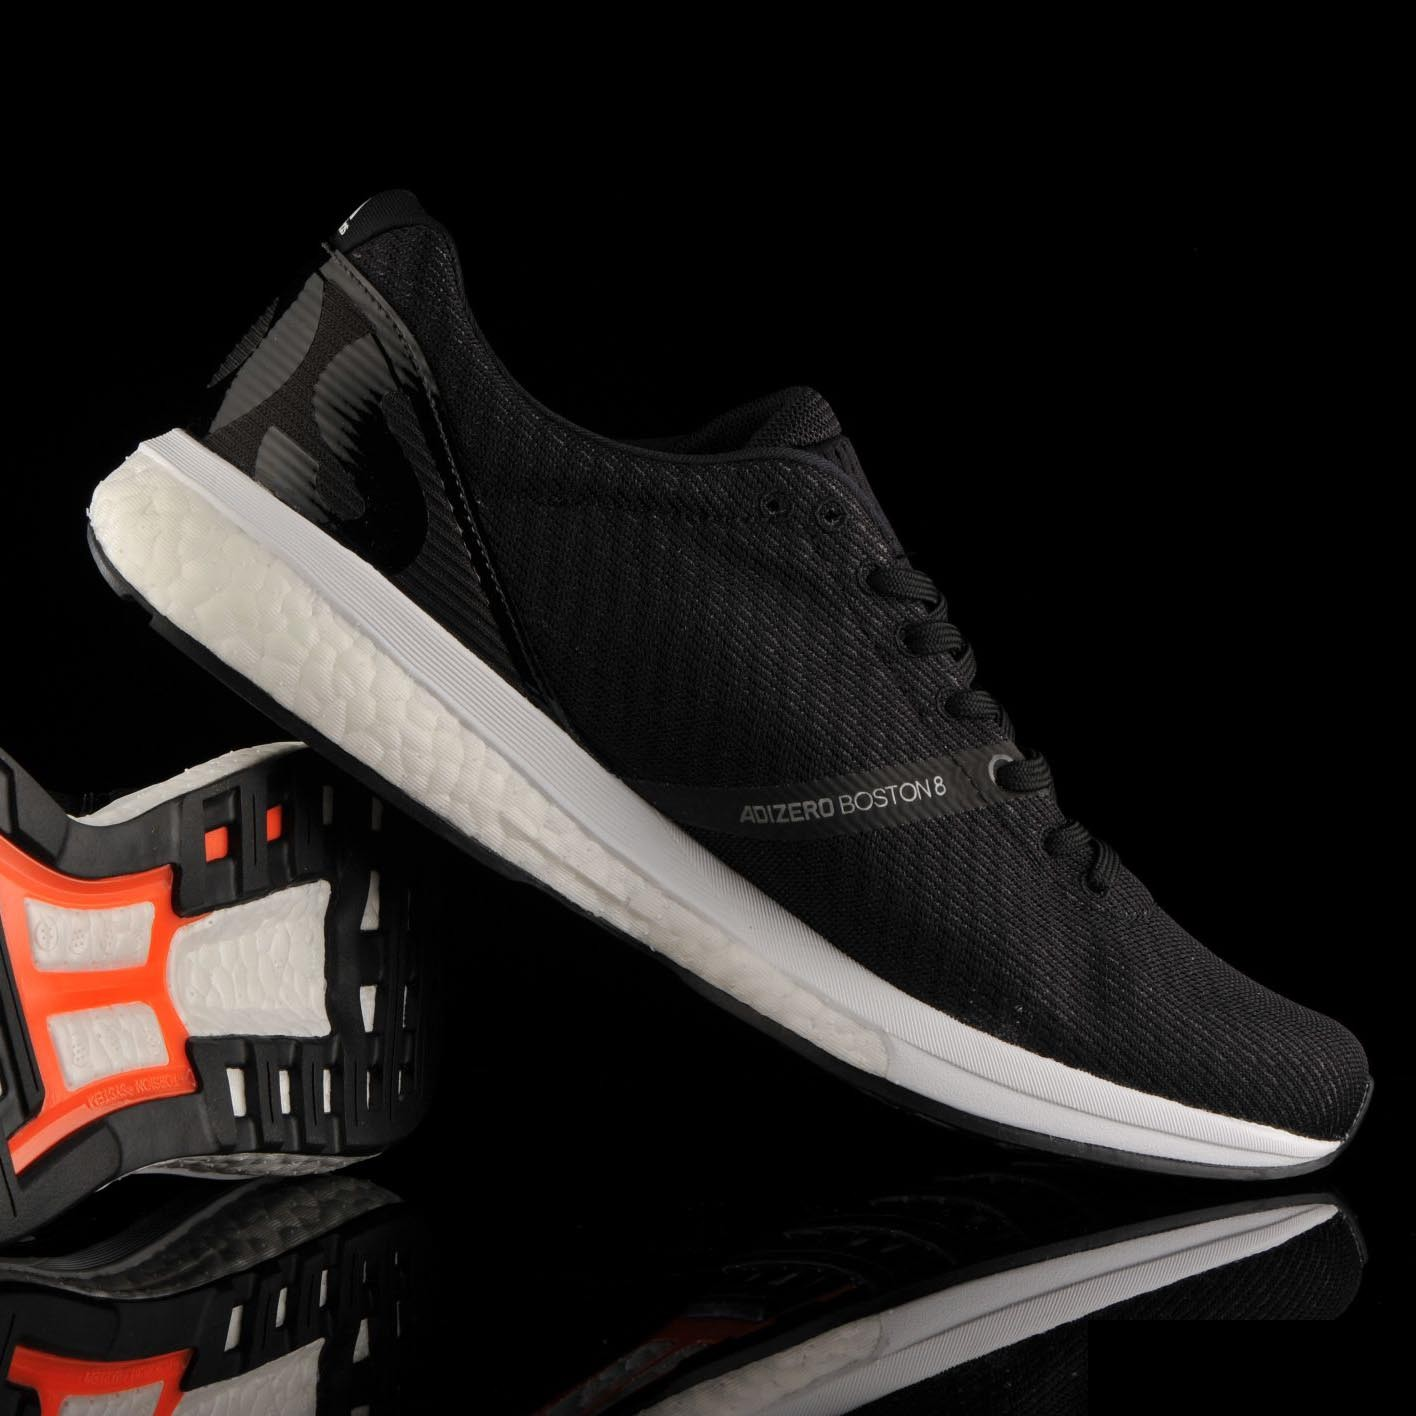 Adidas adizero Boston 8 black/white